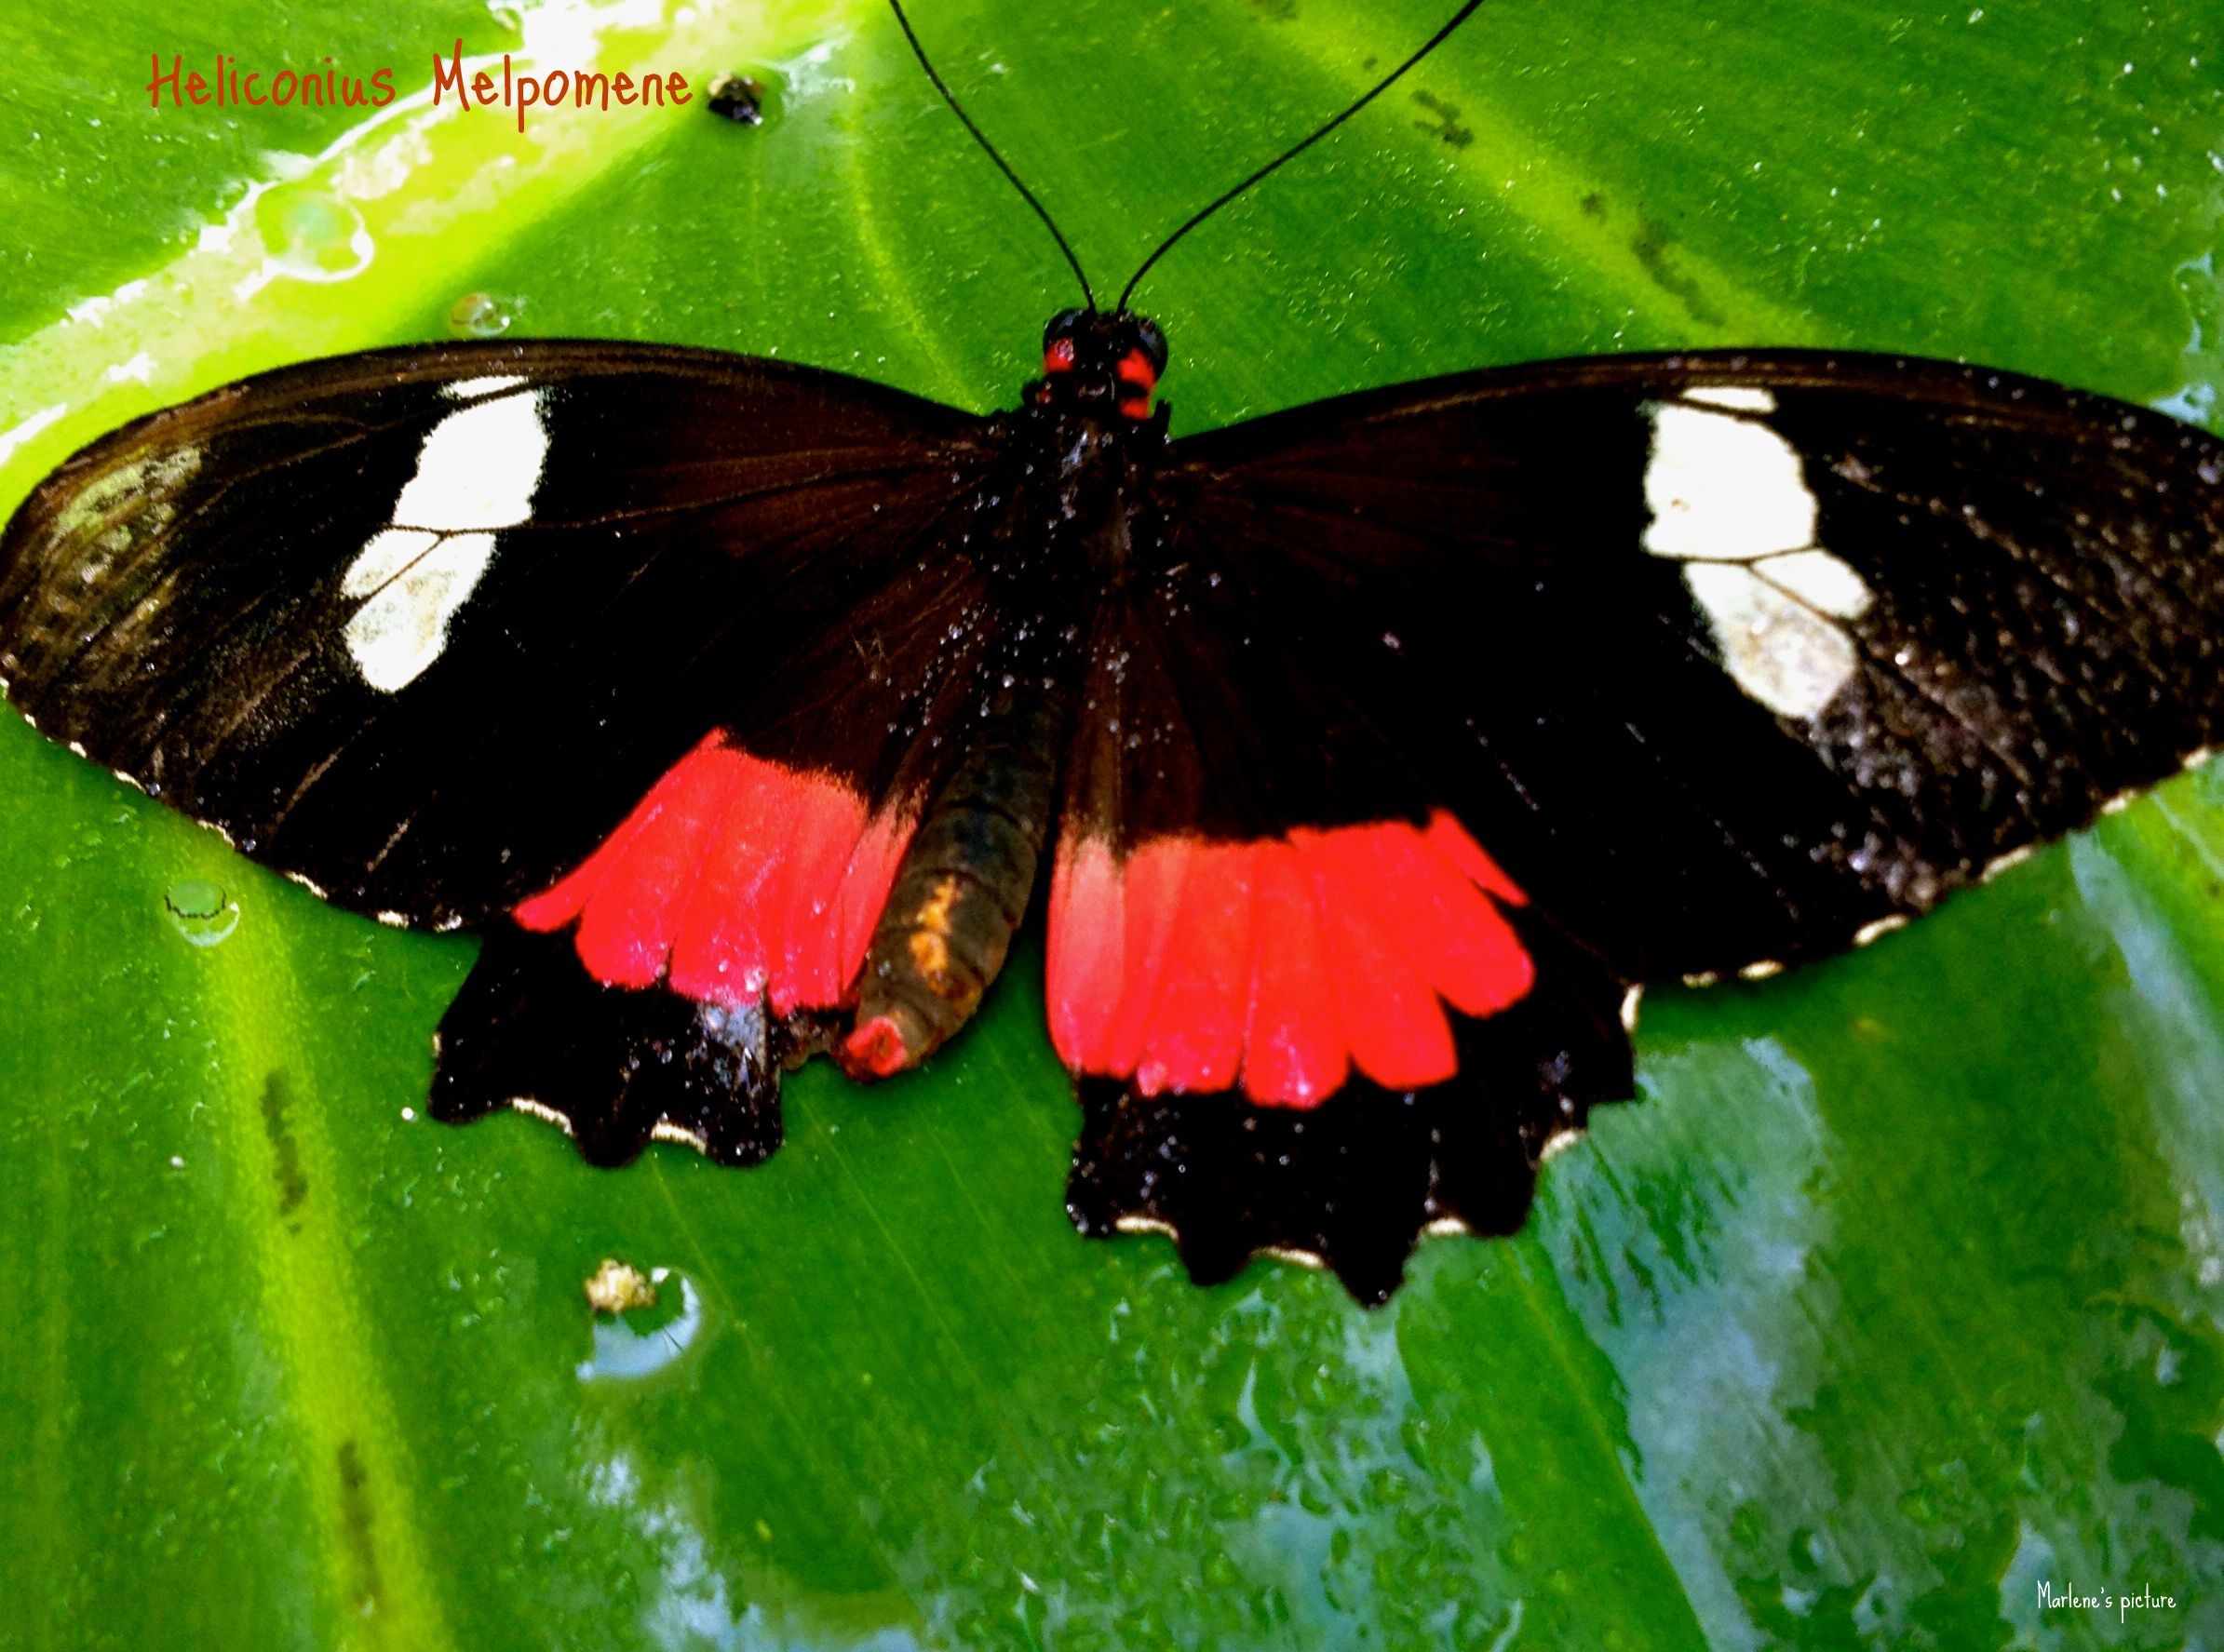 Postman butterfly (Heliconius Melpomene)  There are many morphs of this butterfly throughout Central and South America